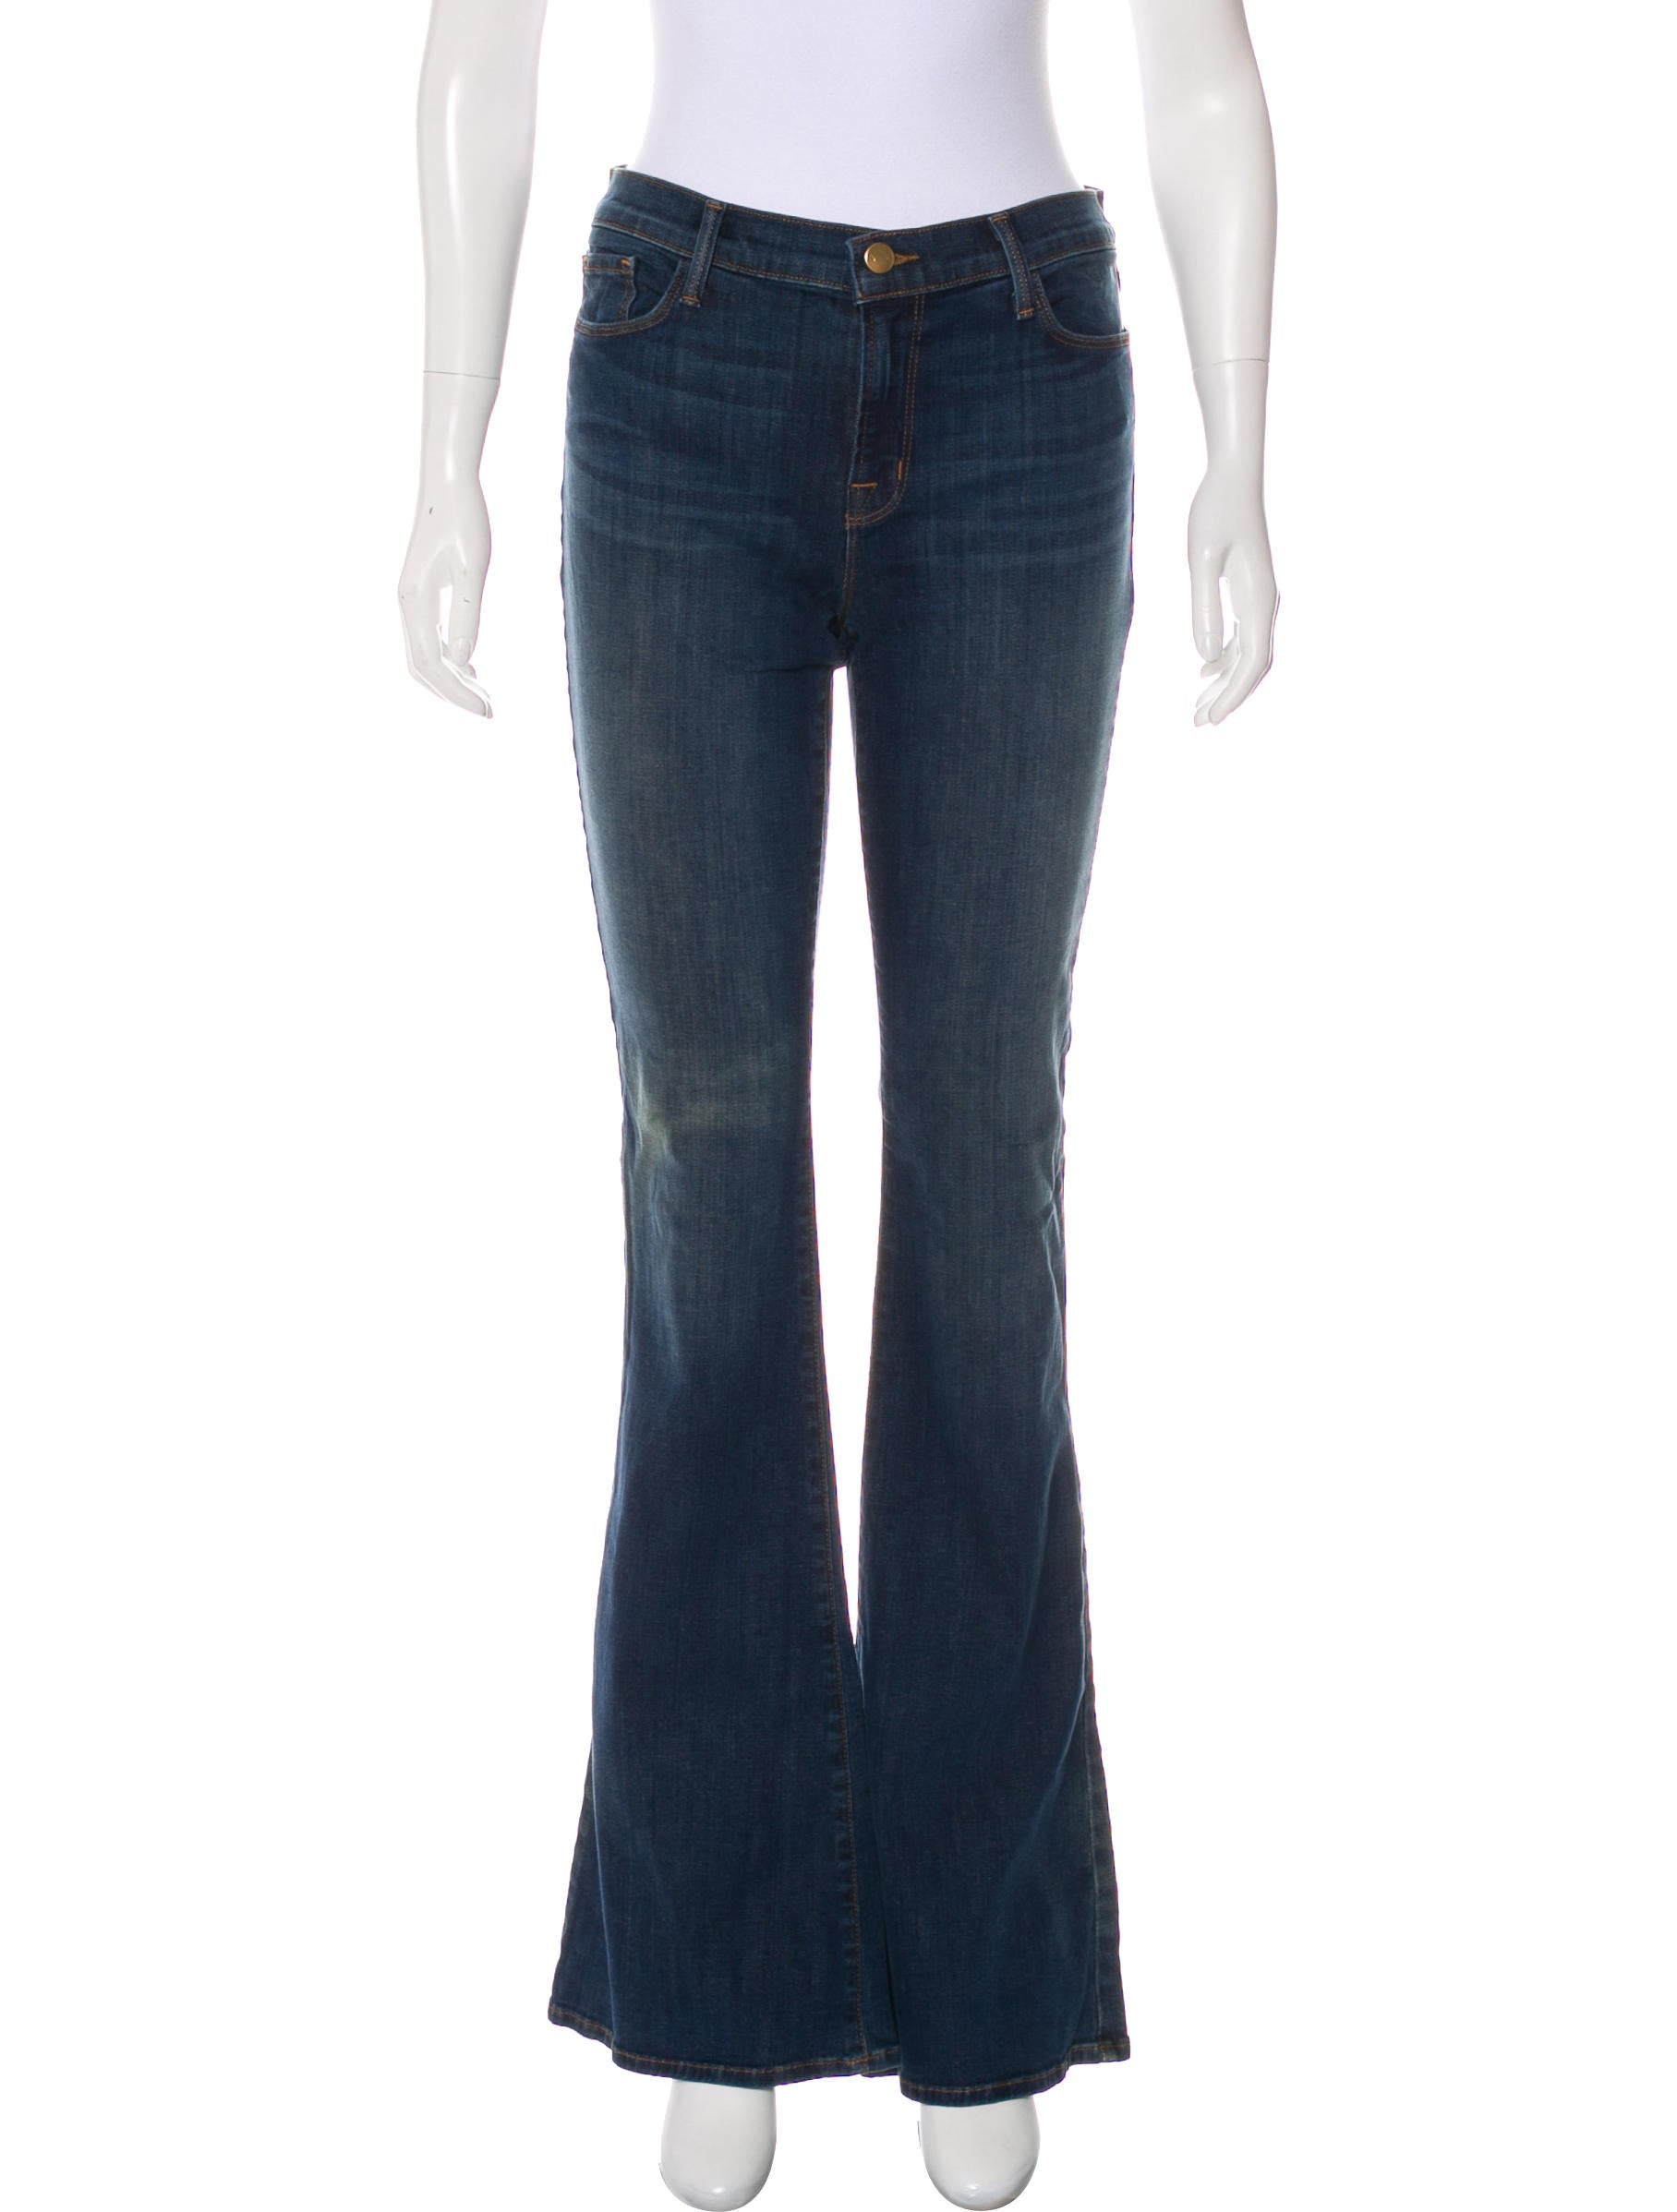 J Brand Mid-Rise Flared Jeans w/ Tags Excellent Cheap Price Discount Browse s3XriFoCB